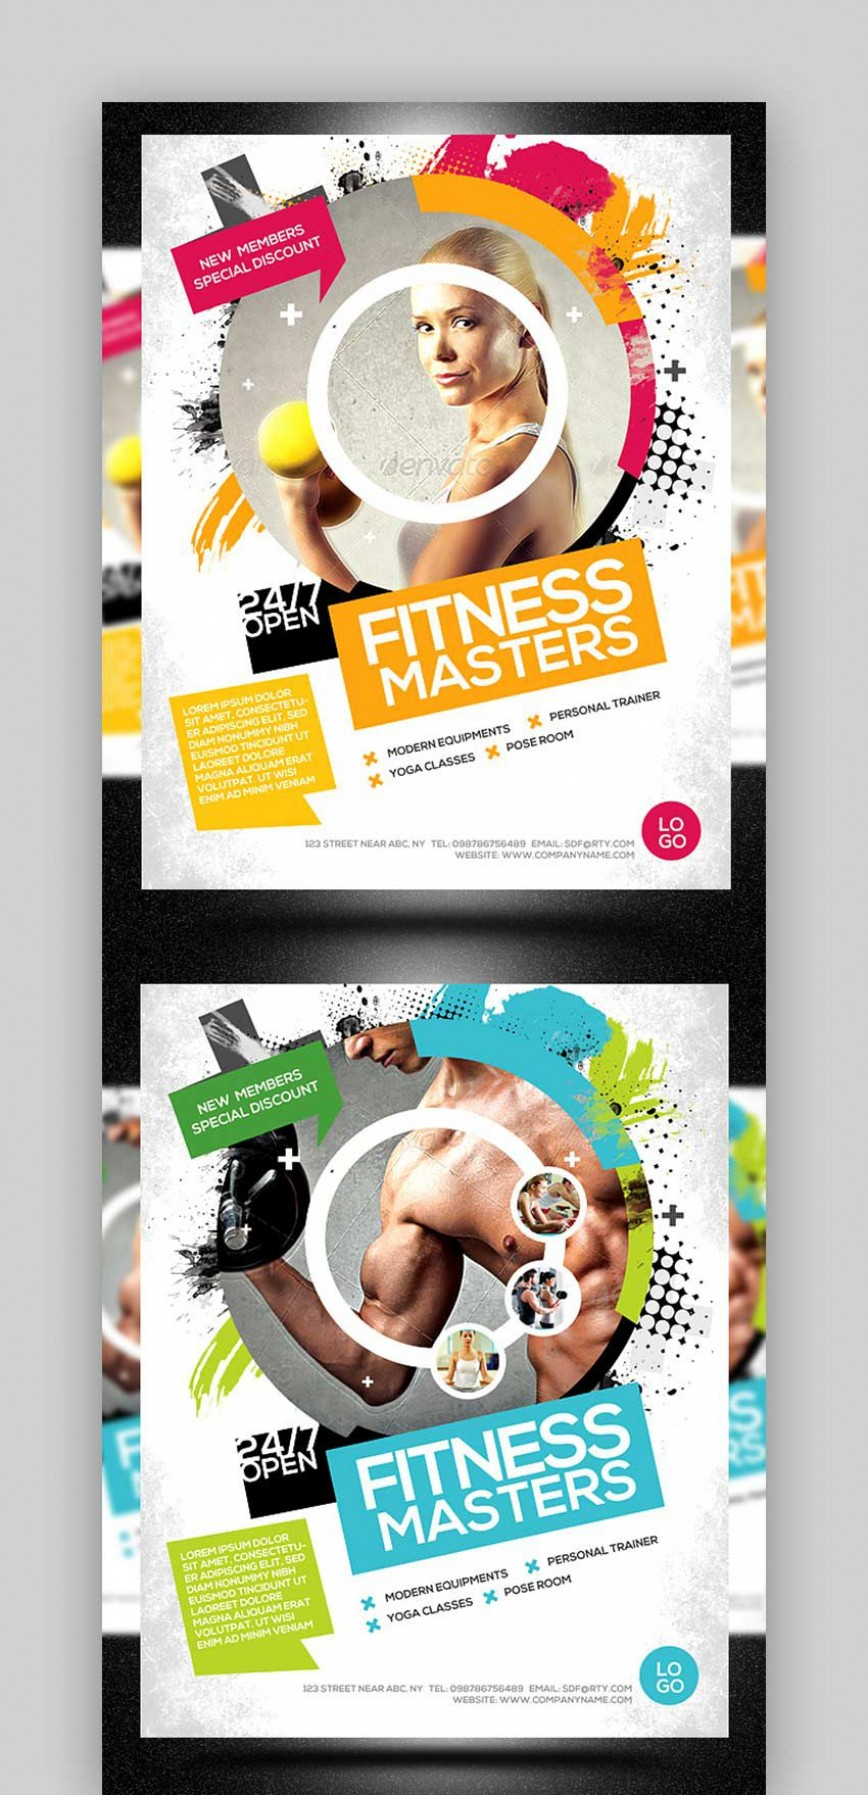 004 Stunning Adobe Photoshop Psd Poster Template Free Download High Resolution 868